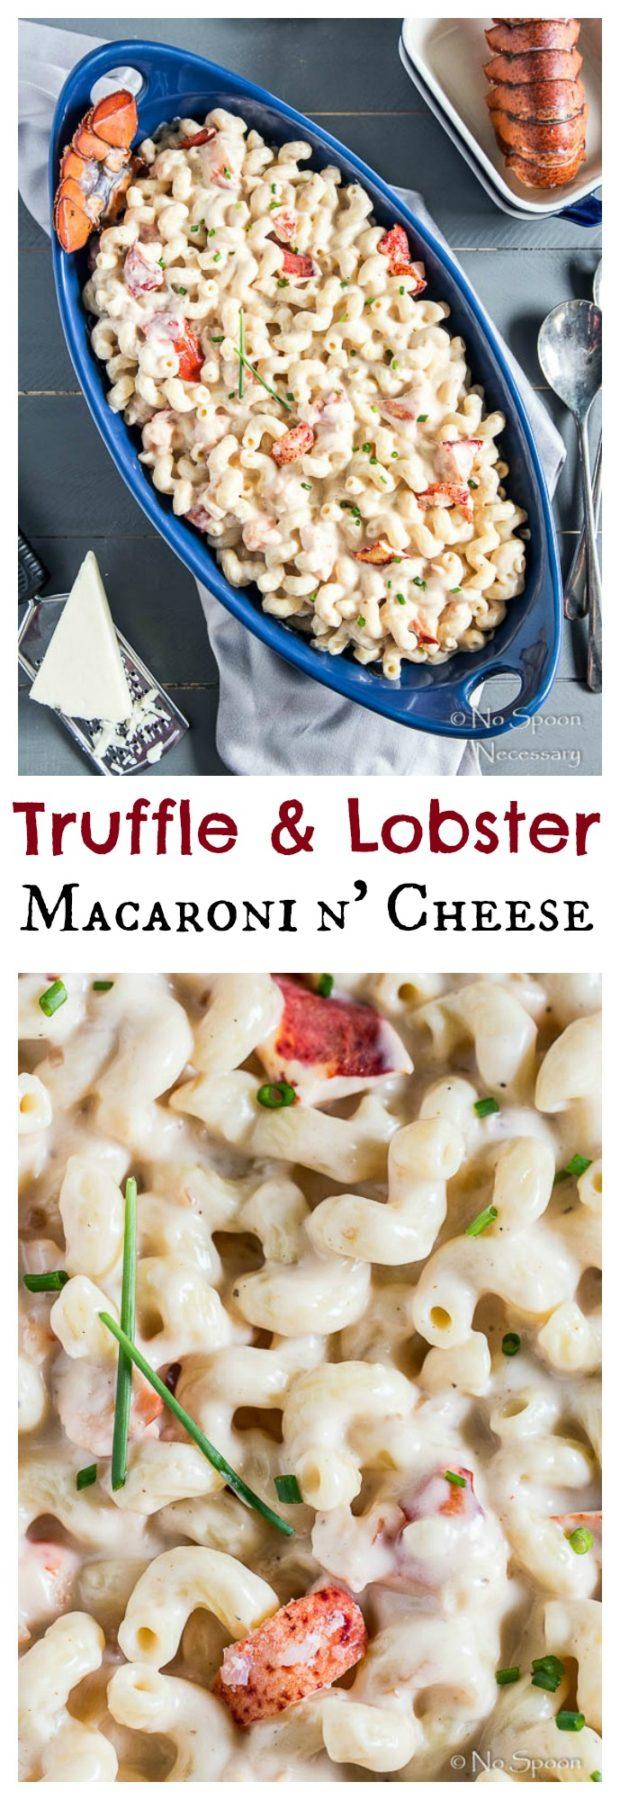 Truffle Lobster Macaroni n' Cheese - No Spoon Necessary